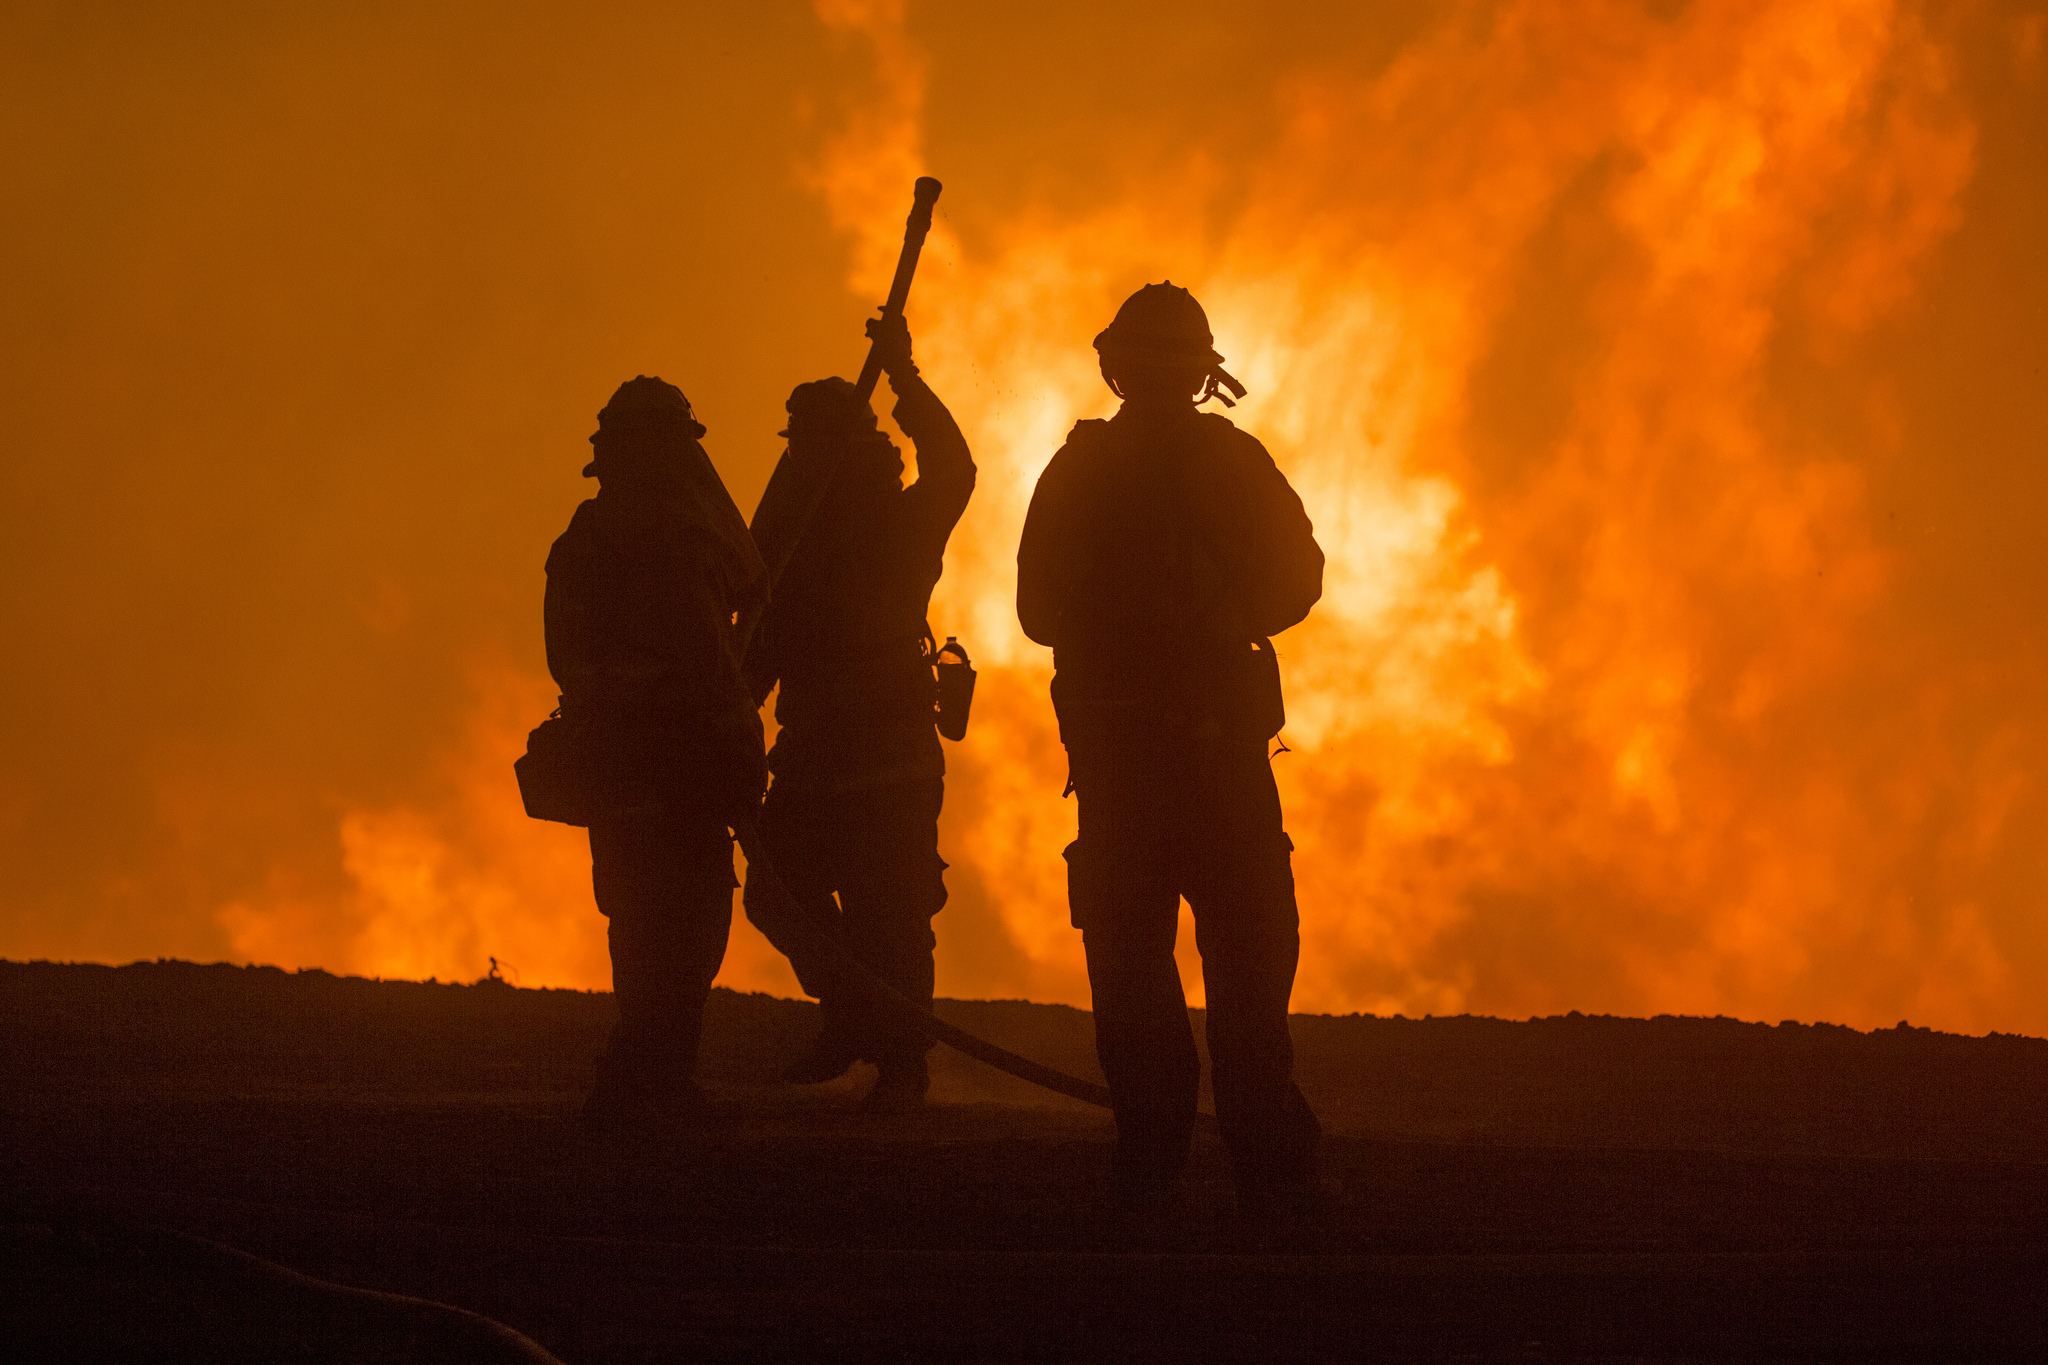 Three firefighters stand in front of a blaze